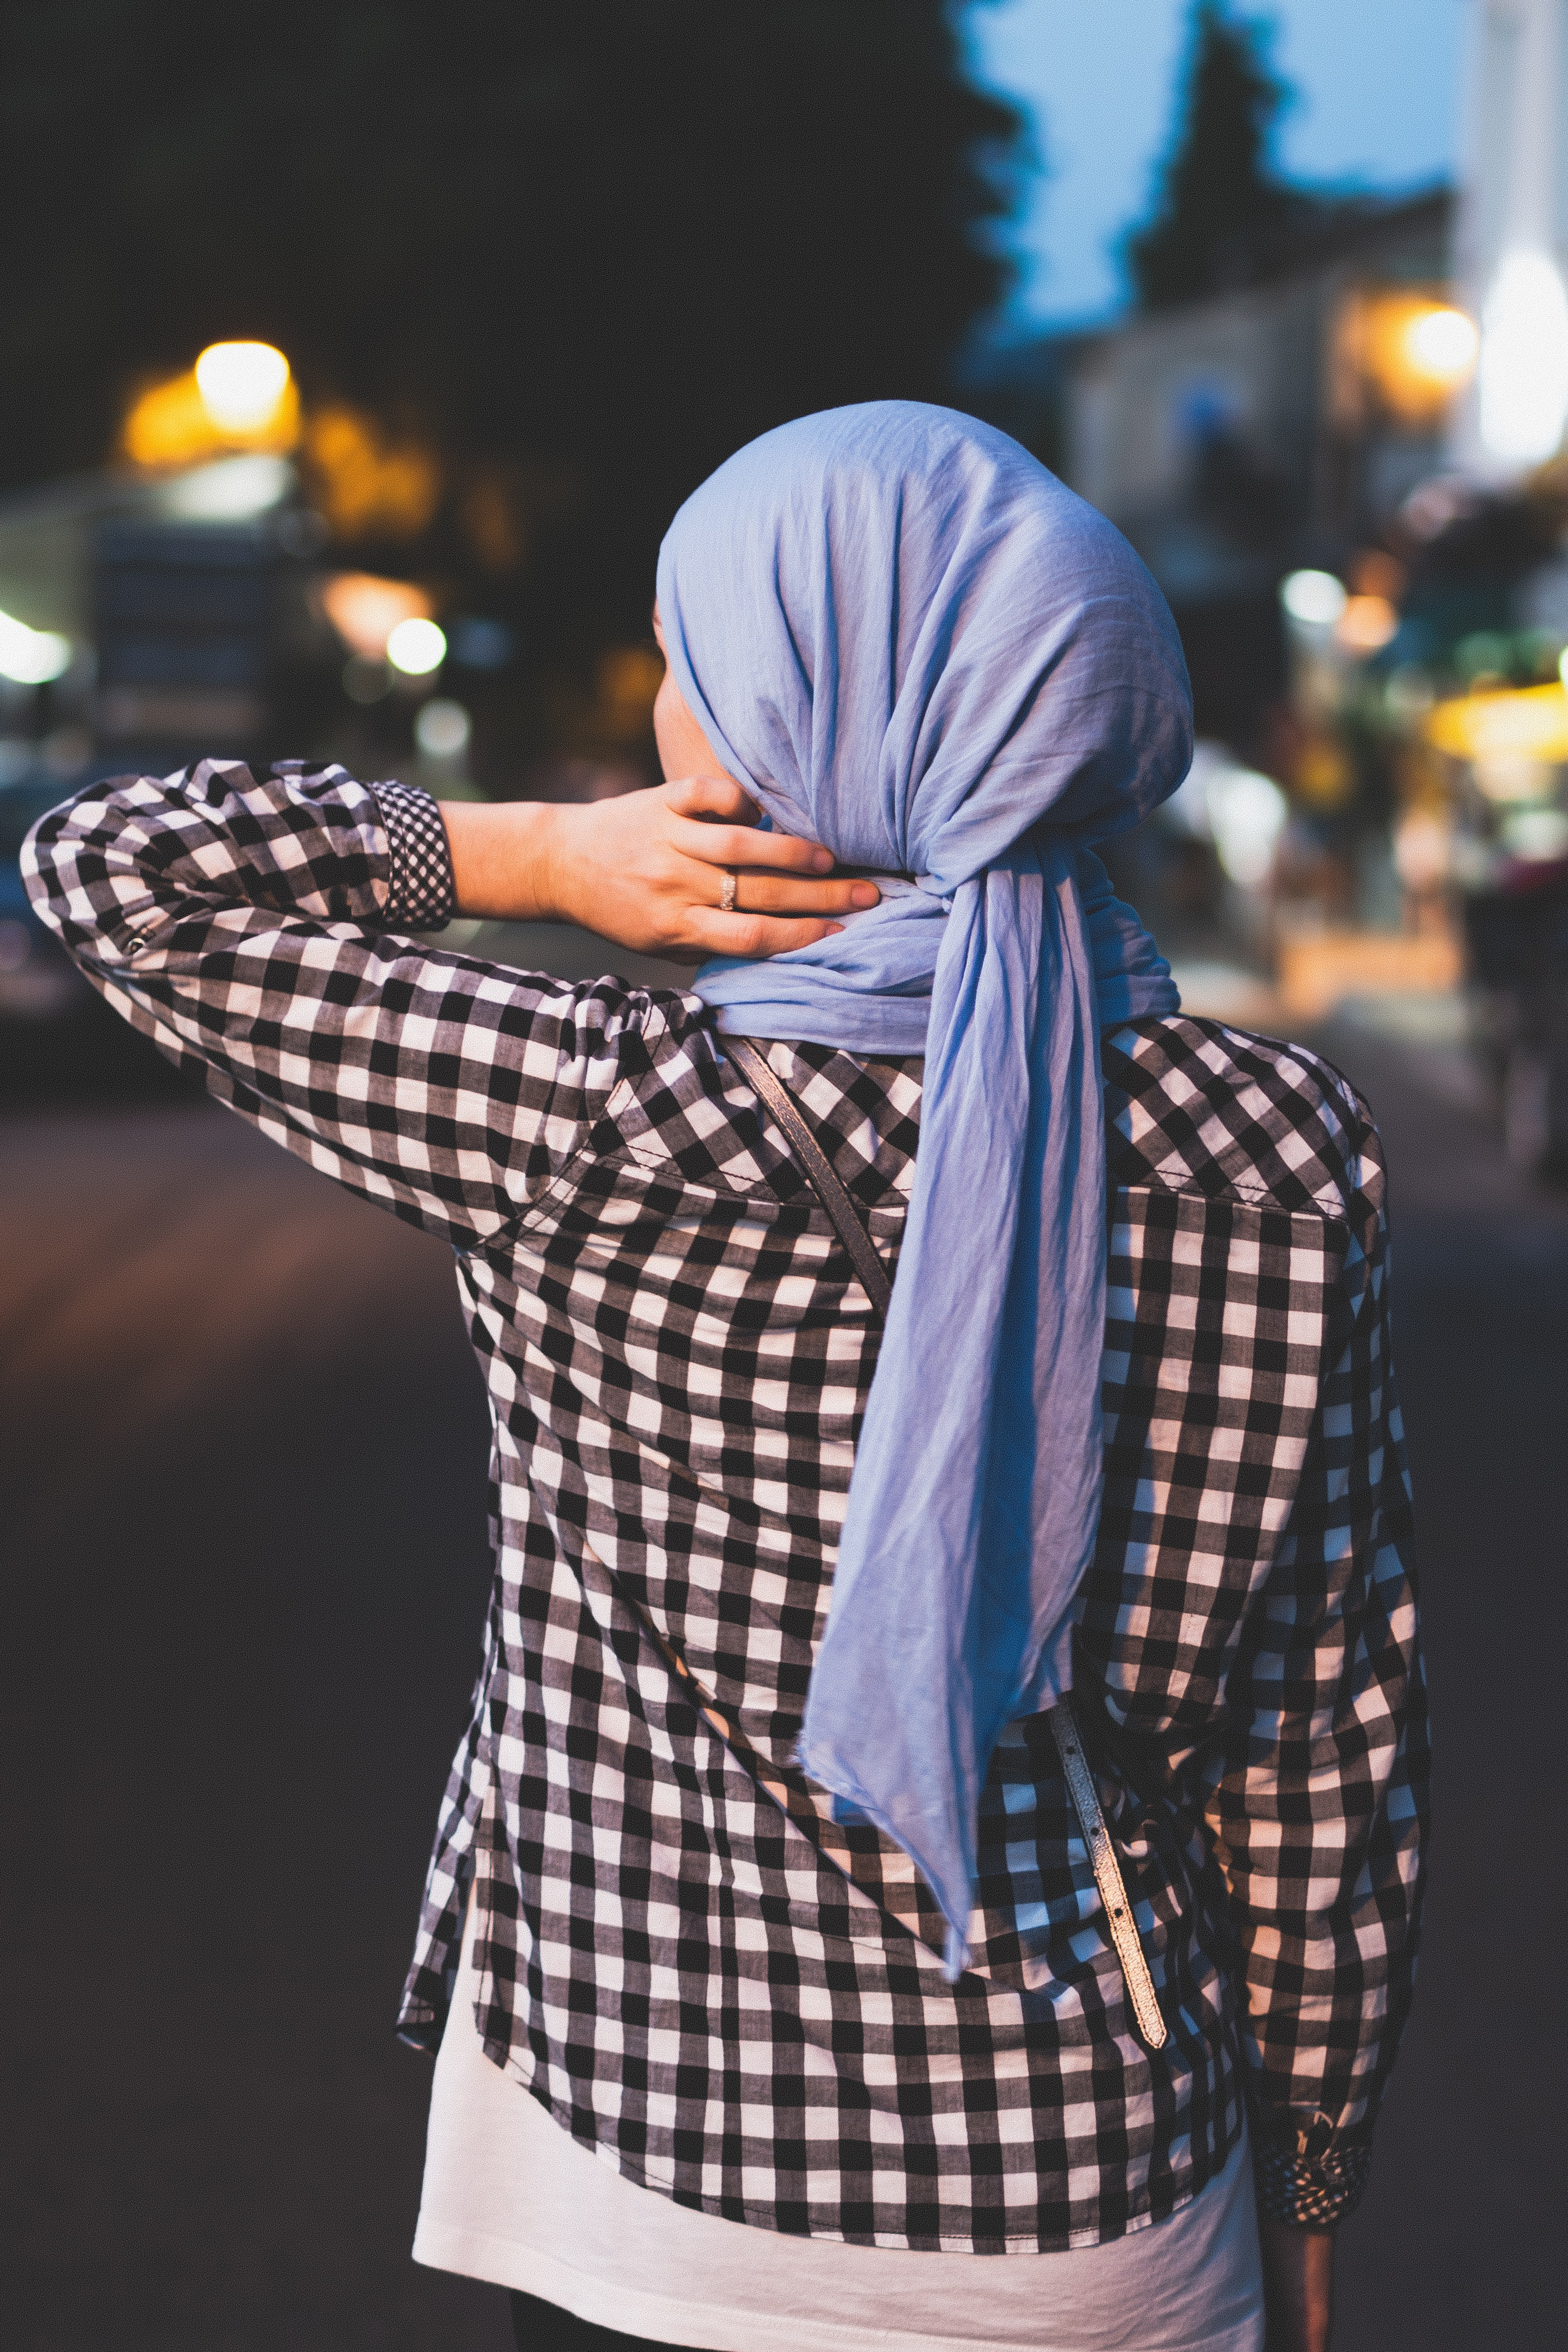 selective focus photograph of person wearing blue headscarf